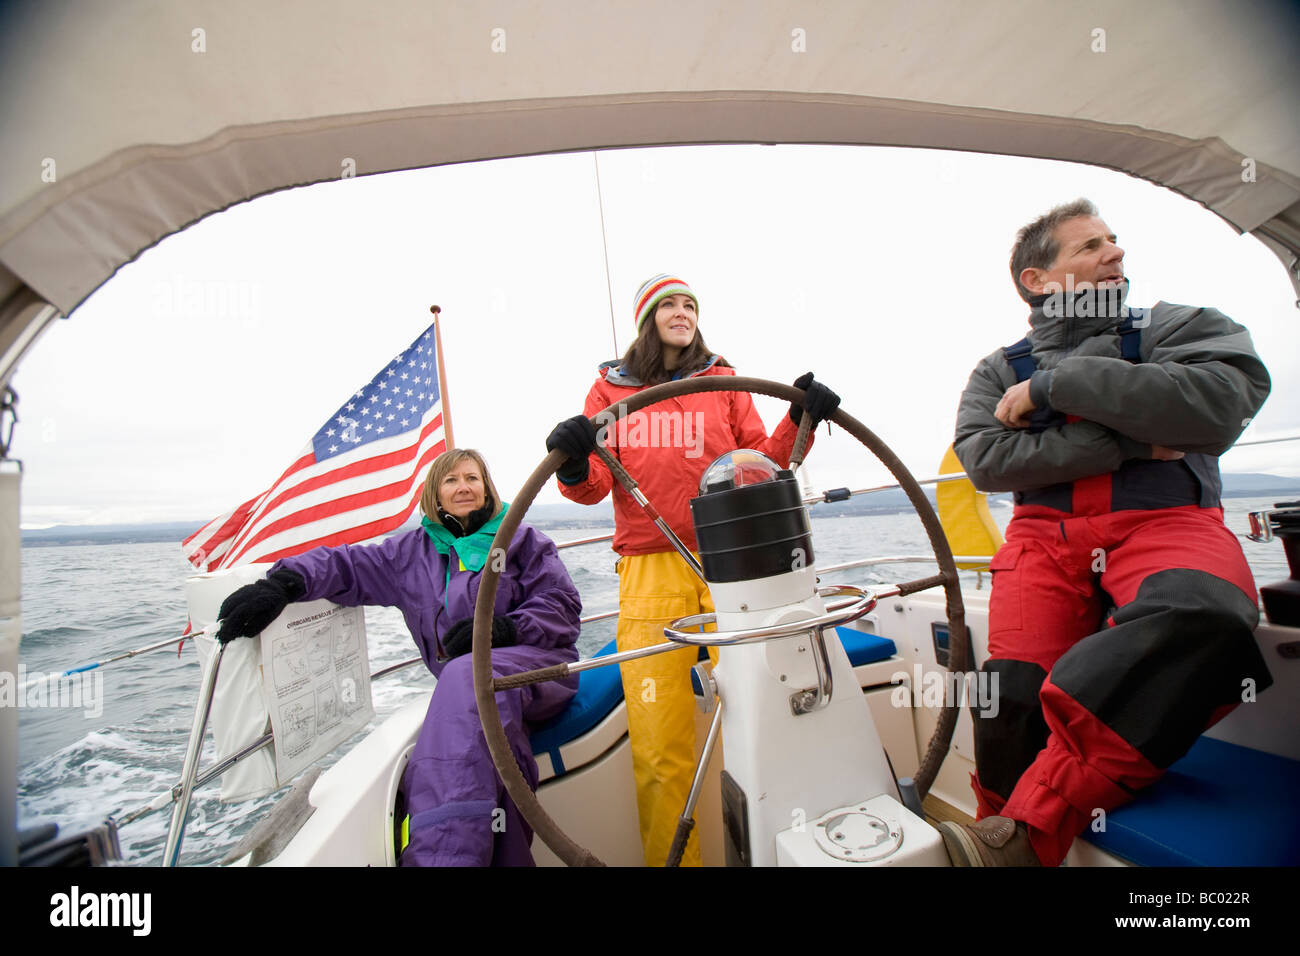 Three people in bright colored sailing gear out at sea. - Stock Image